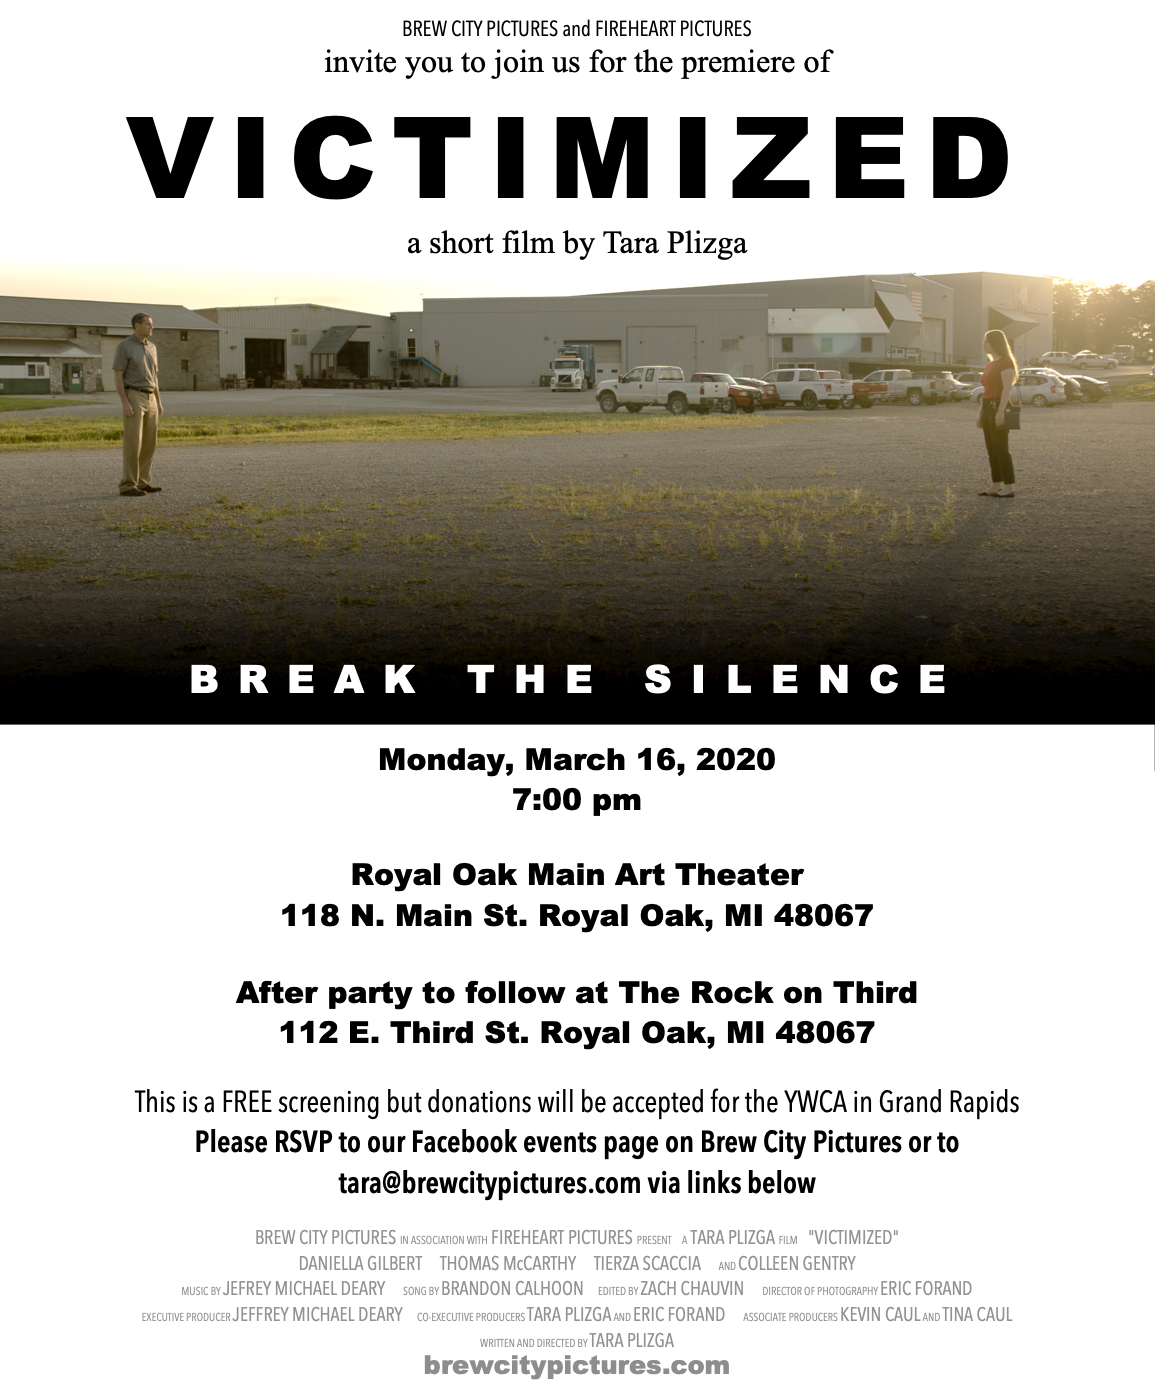 VICTIMIZED - Premiere Invite